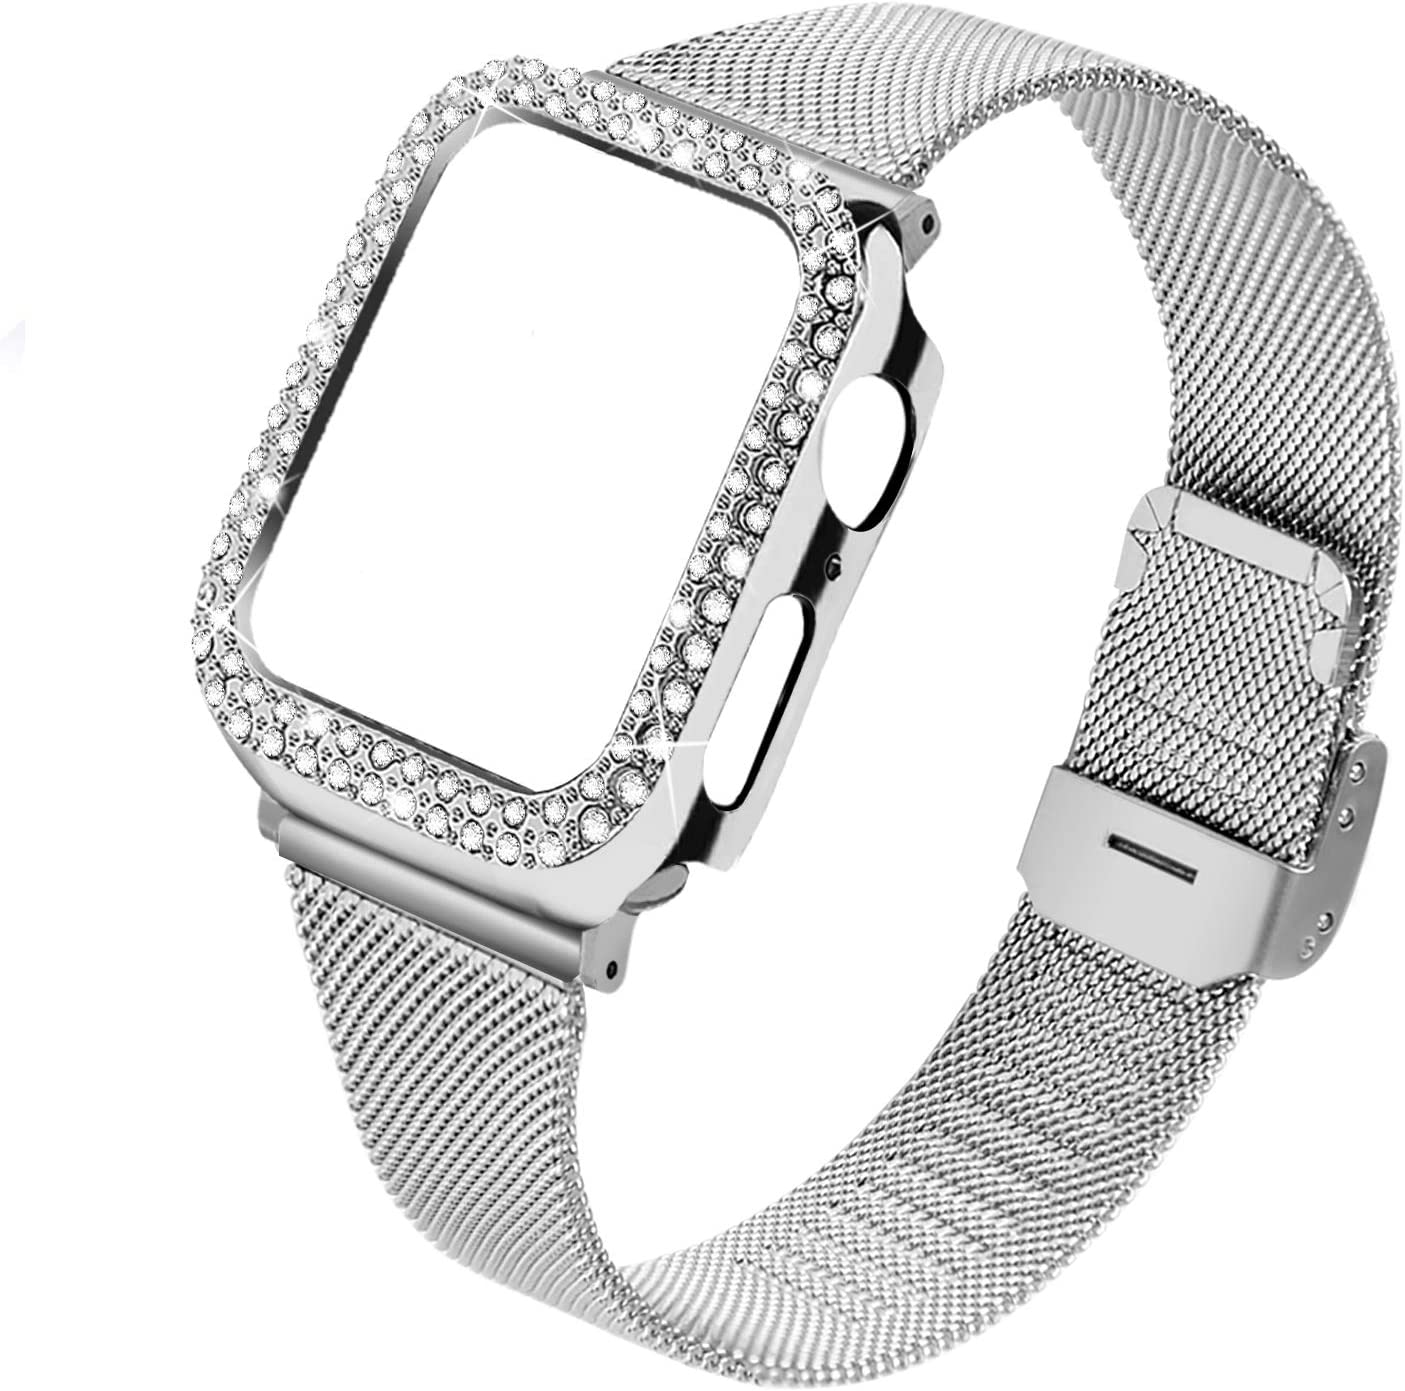 Joyozy Stainless Steel Mesh bands Compatible For Apple Watch 42mm,Women Bling Protective Crystal Diamond Case with Loop Mesh Strap For Apple watch Series 3/2/1(No Tool Needed) (Sliver, 42MM)